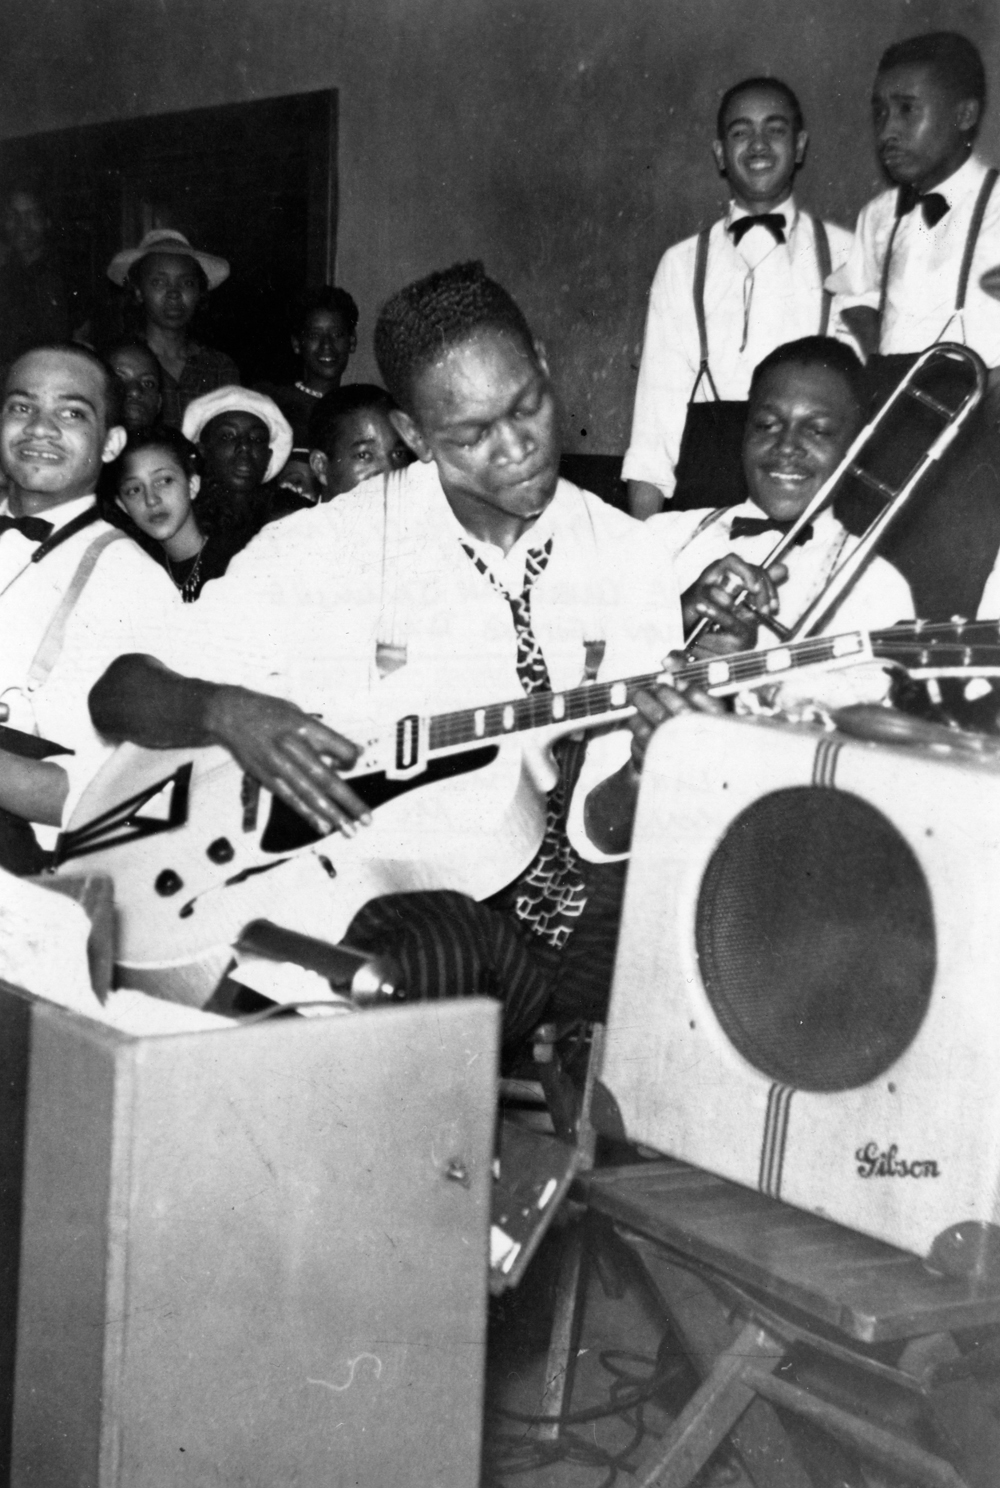 Charlie Christian Playing Guitar with the Harlan Leonard Band, Lincoln Hall, Kansas City Missouri 1940